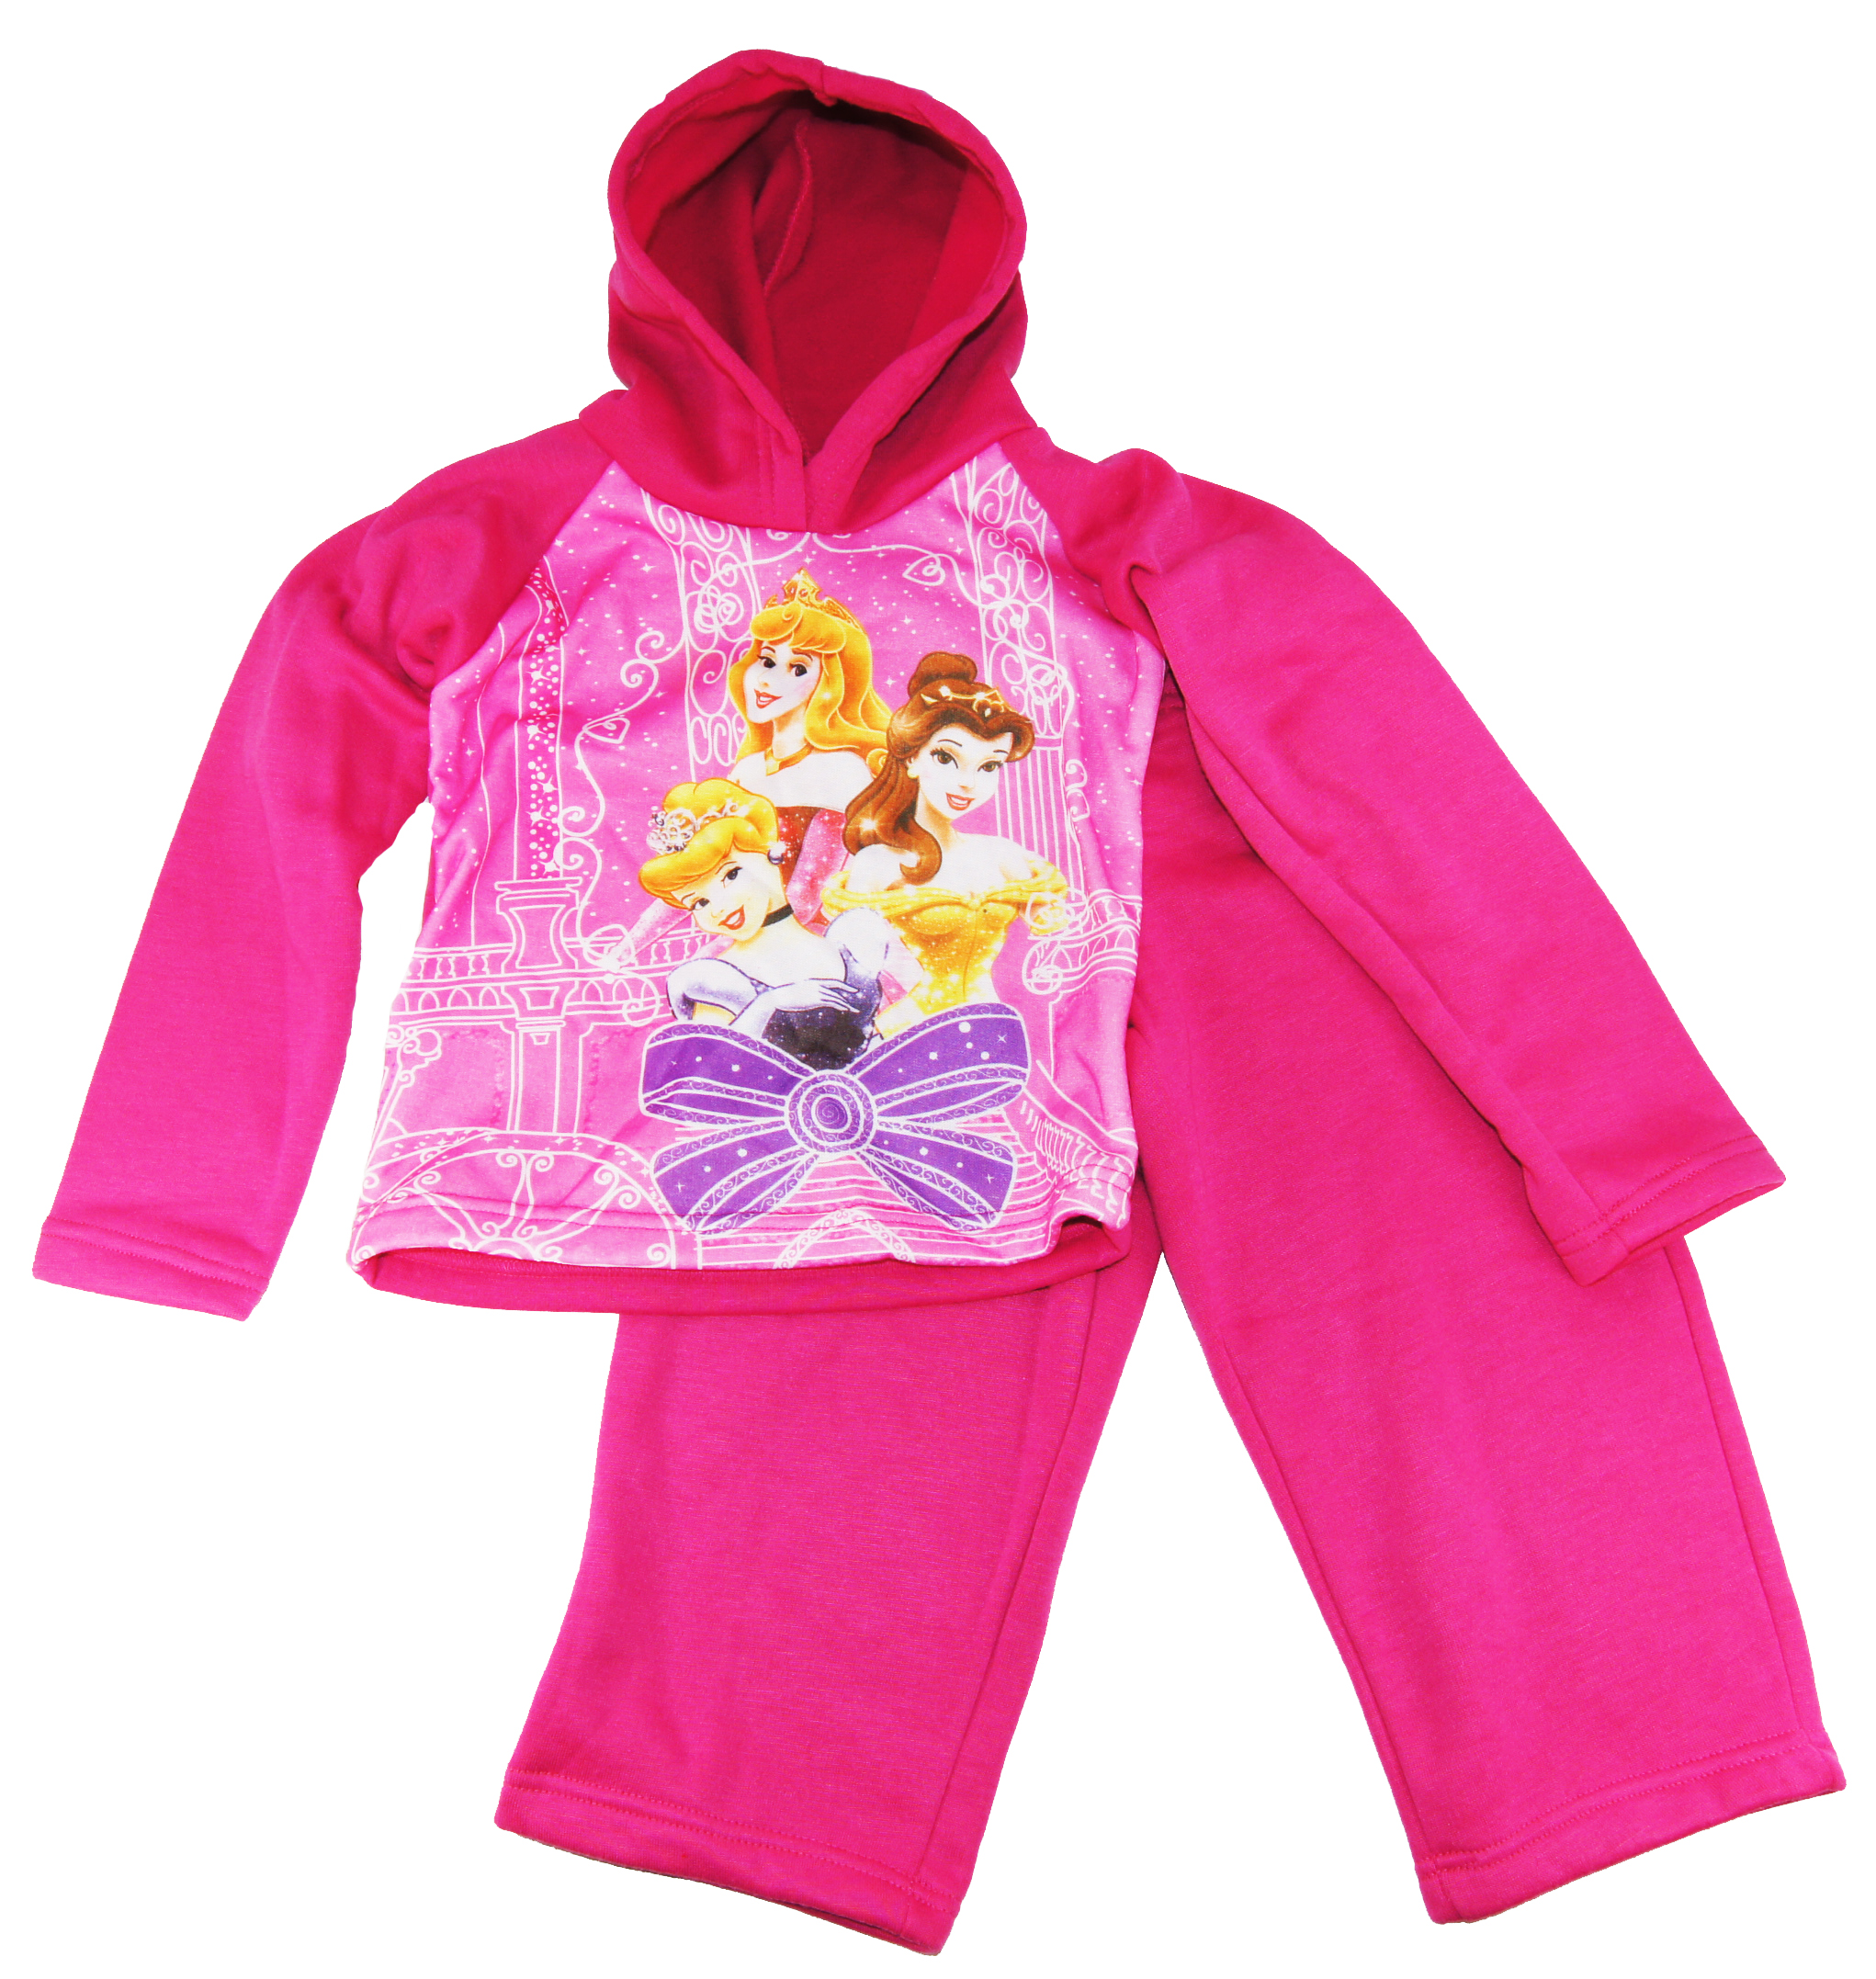 Disney Toddler Girls Princess Pink Tricot Track Hooded Jacket & Pants 2T 3T 4T at Sears.com